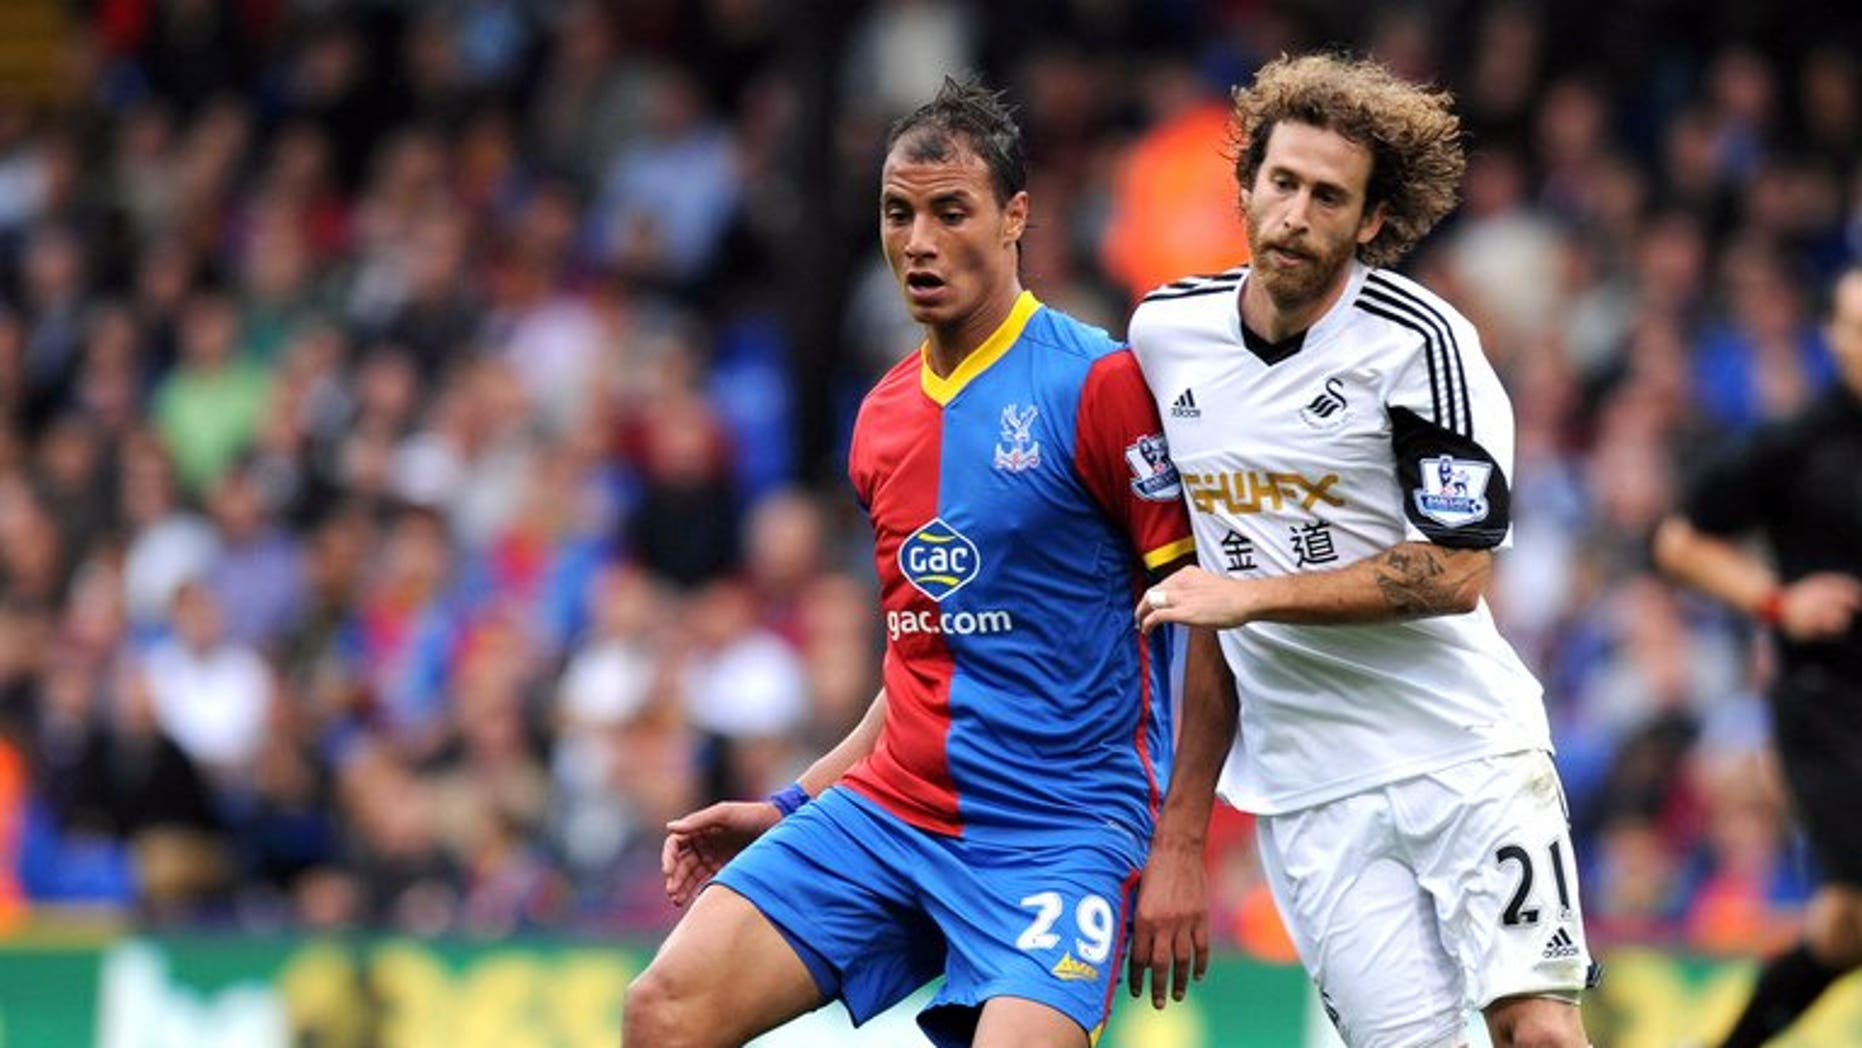 Crystal Palace's Marouane Chamakh and Swansea City's Jose Alberto Canas at Selhurst Park in south London on September 22, 2013. Swansea carried on from where they left off in Europe with a 2-0 Premier League win away to strugglers Crystal Palace on Sunday.